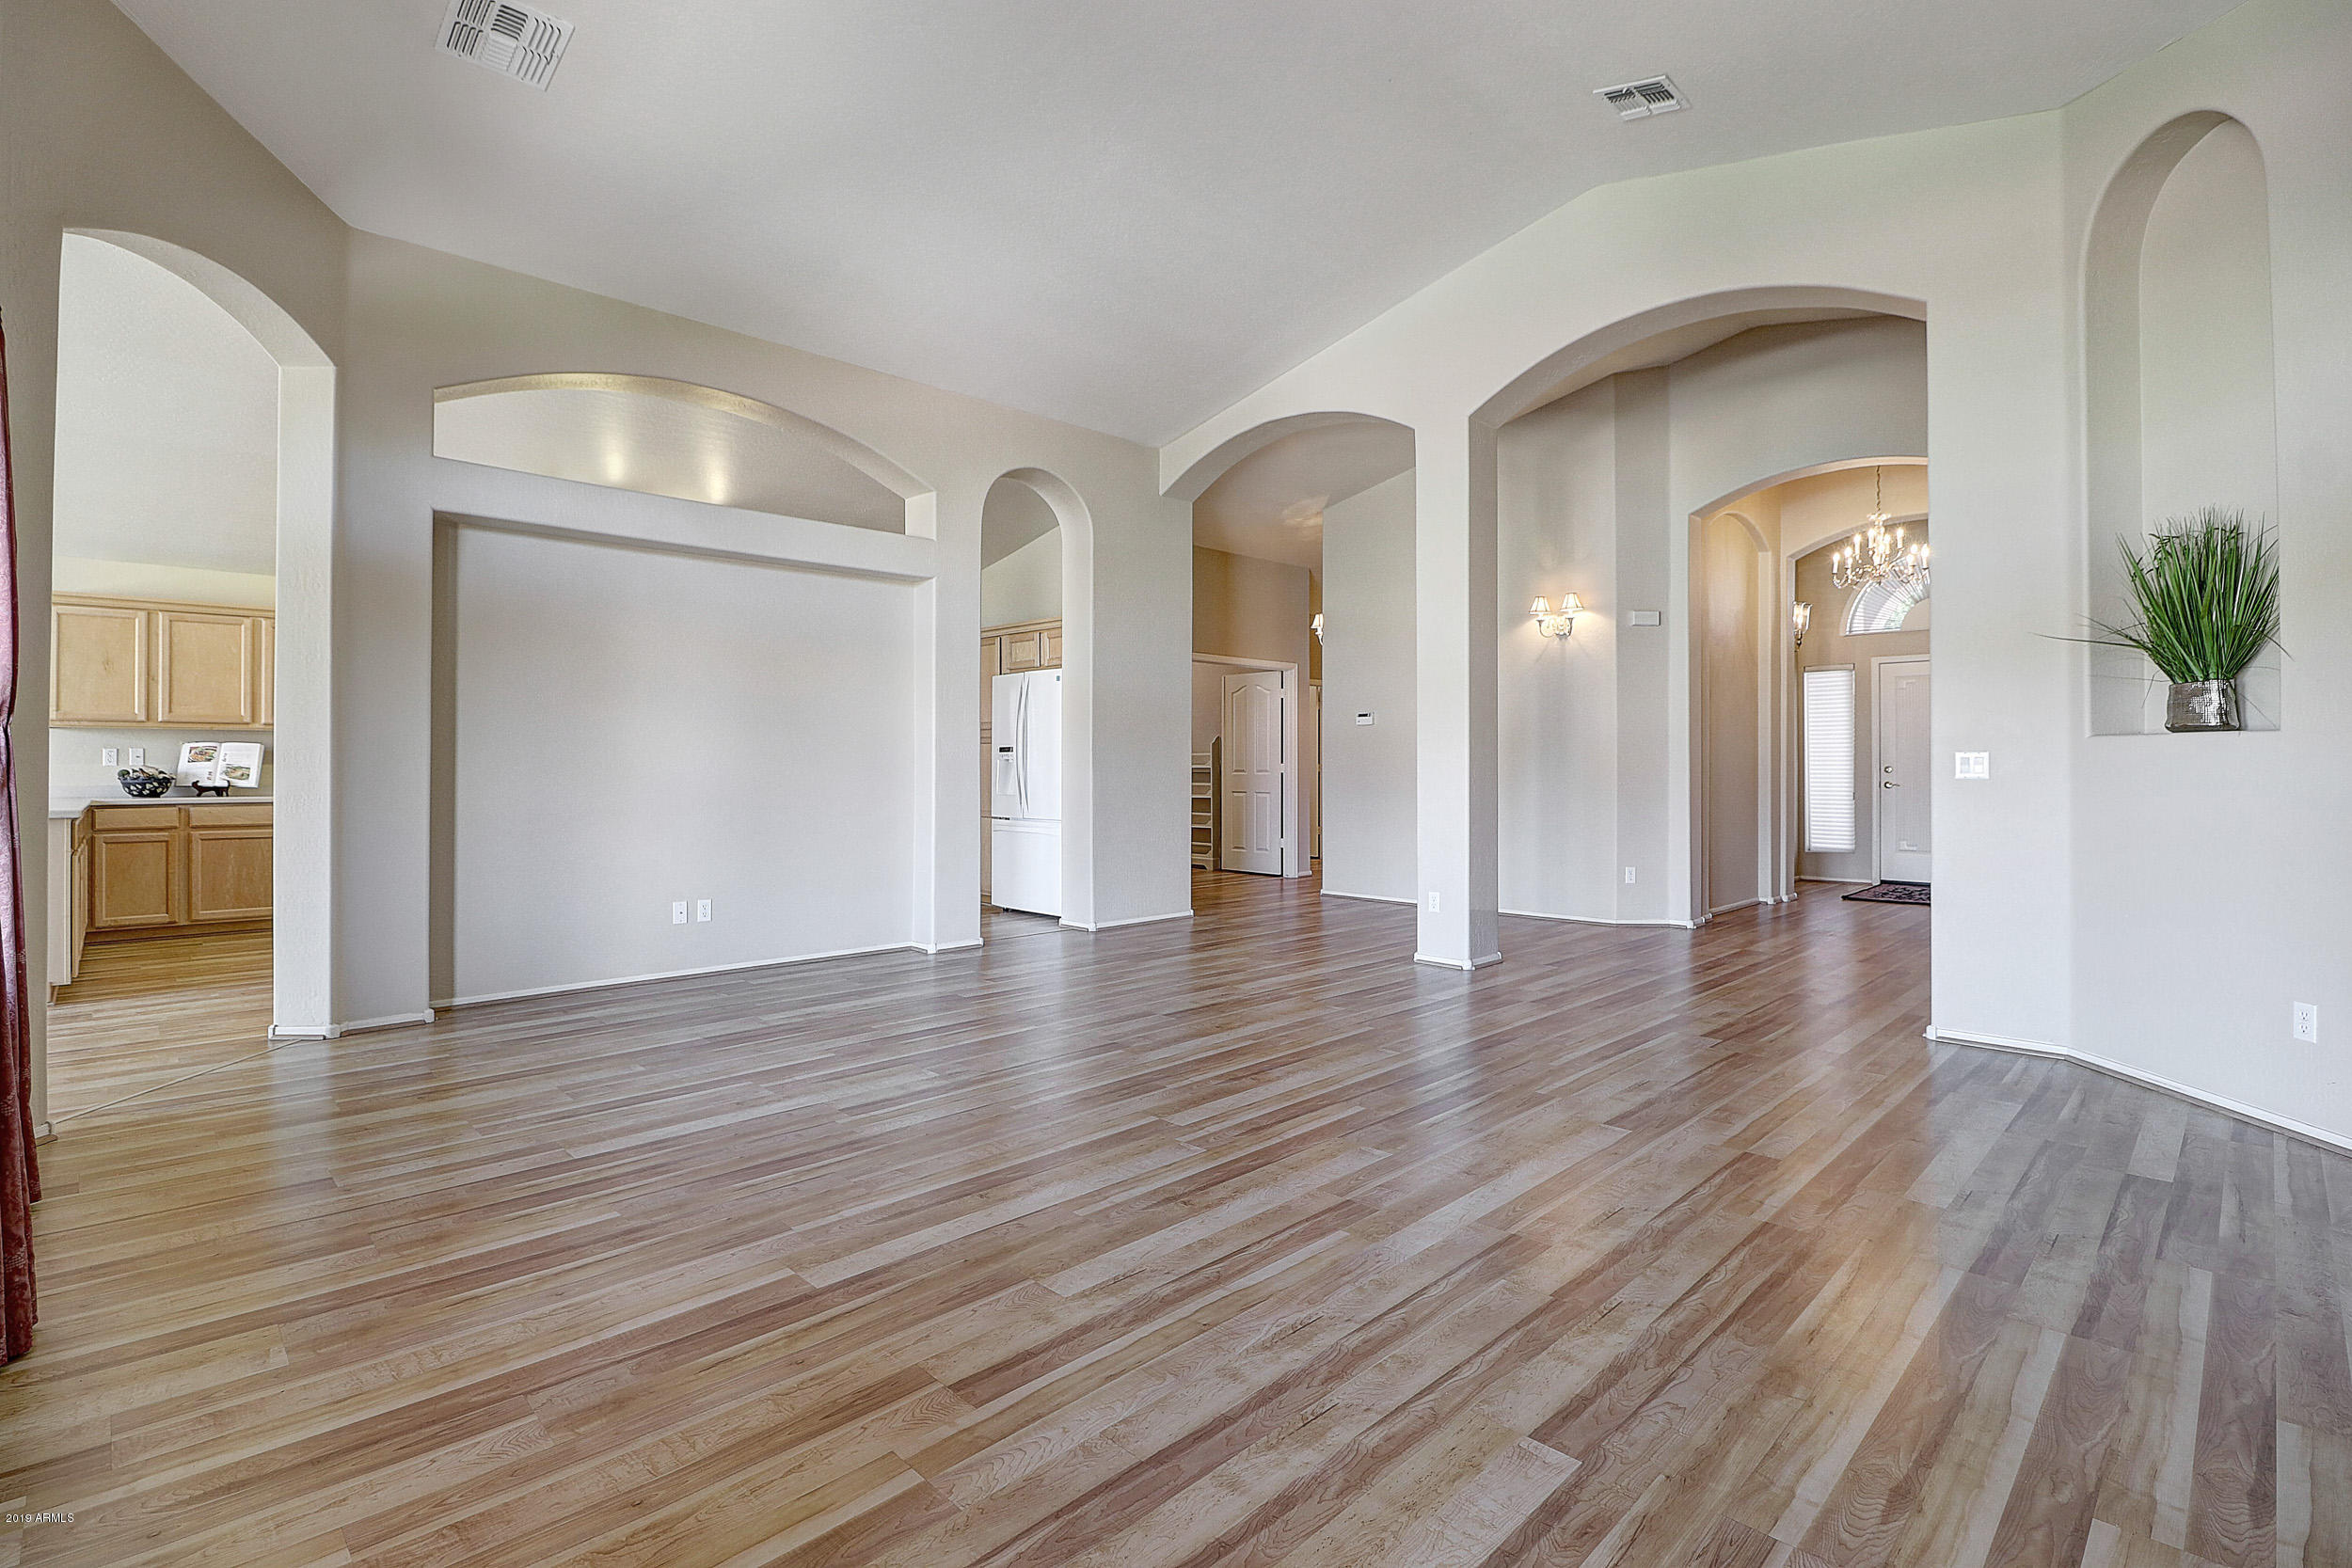 4202 W Marco Polo Road Glendale 85308 Mls 5919595 Better Homes And Gardens Bloomtree Realty